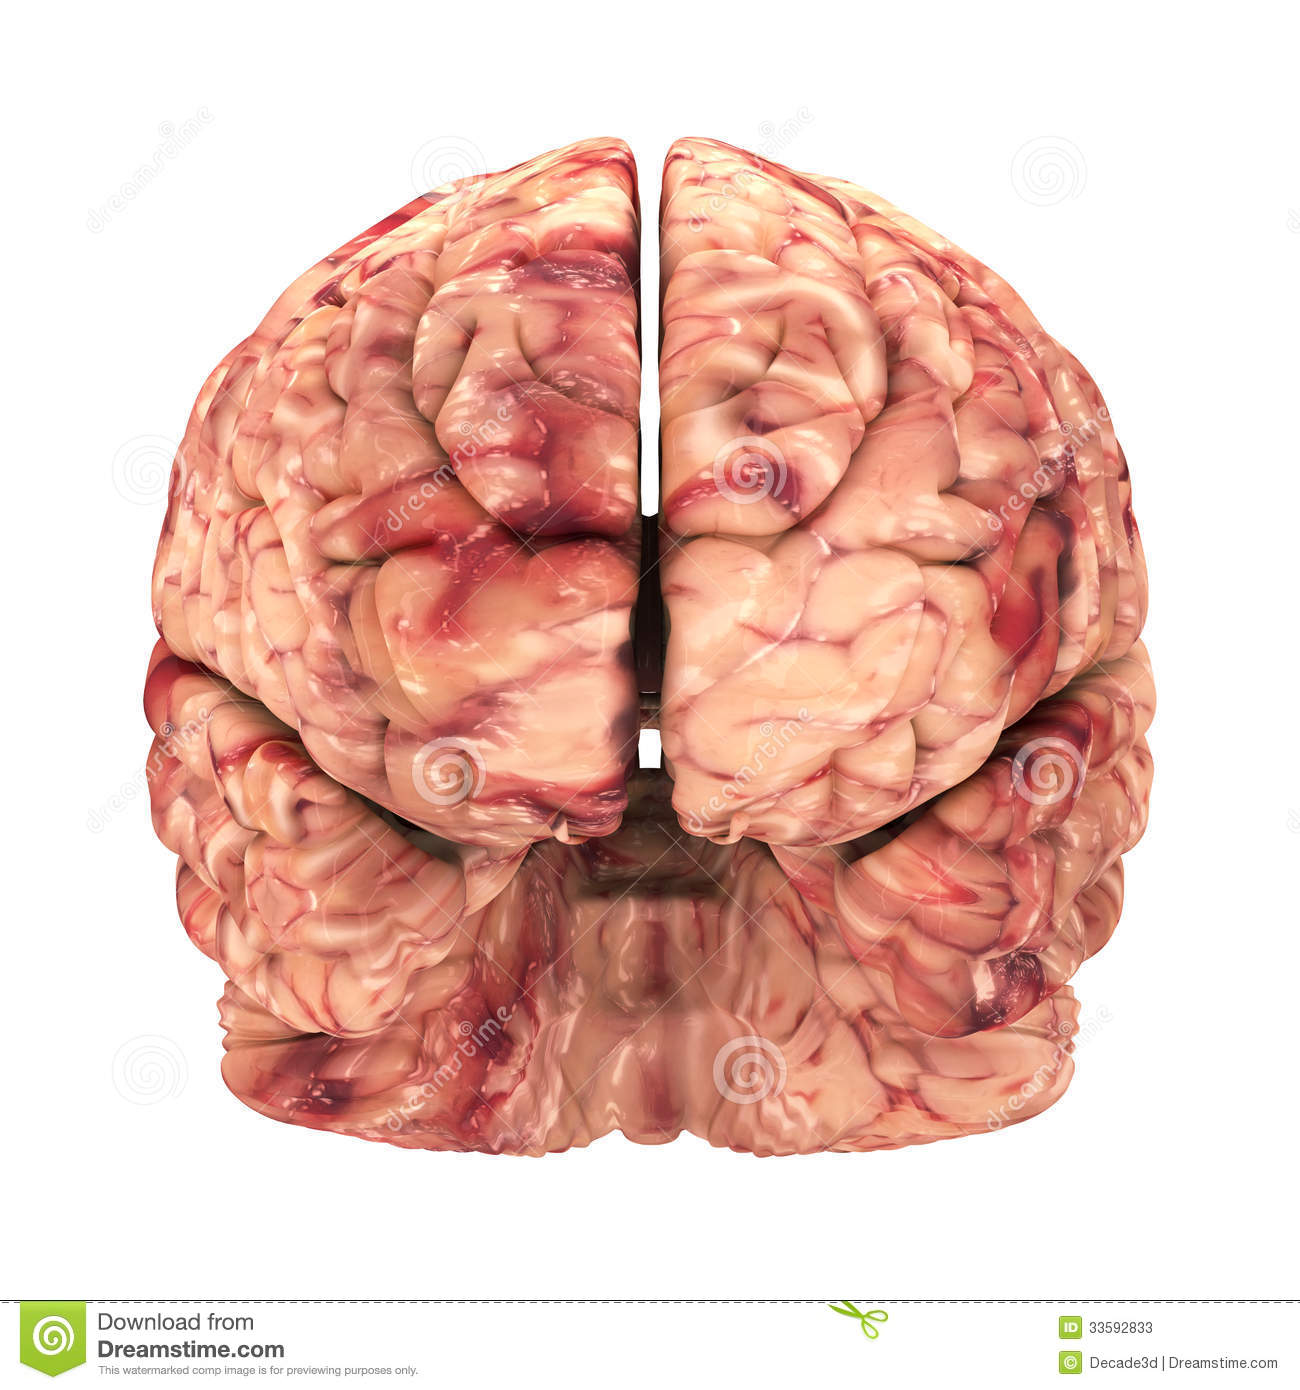 Illustration of head with brain frontal view clipart.